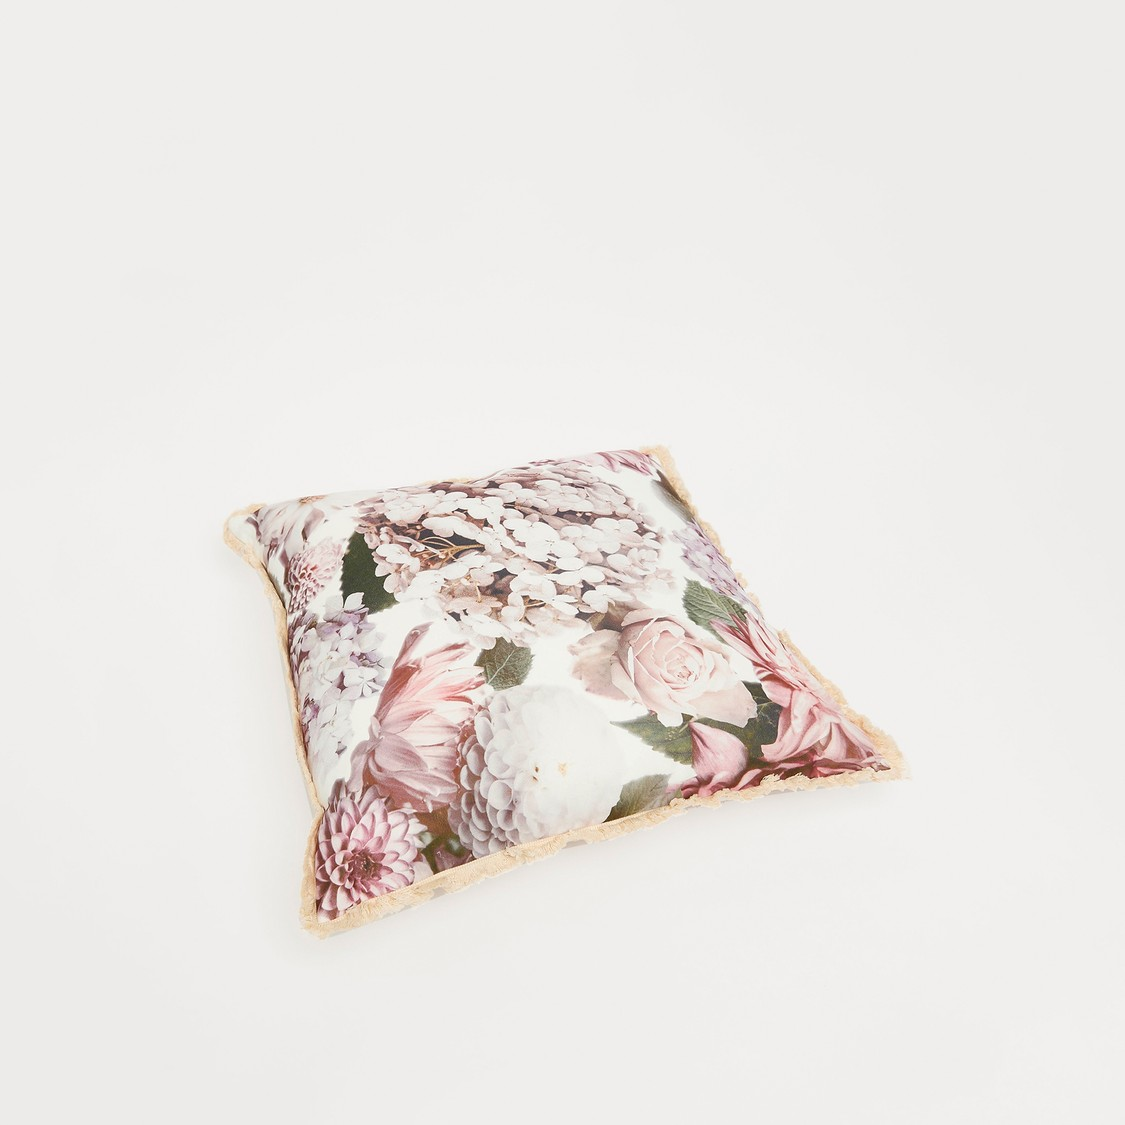 Floral Print Filled Cushion with Ruffle Detail - 45x45 cms